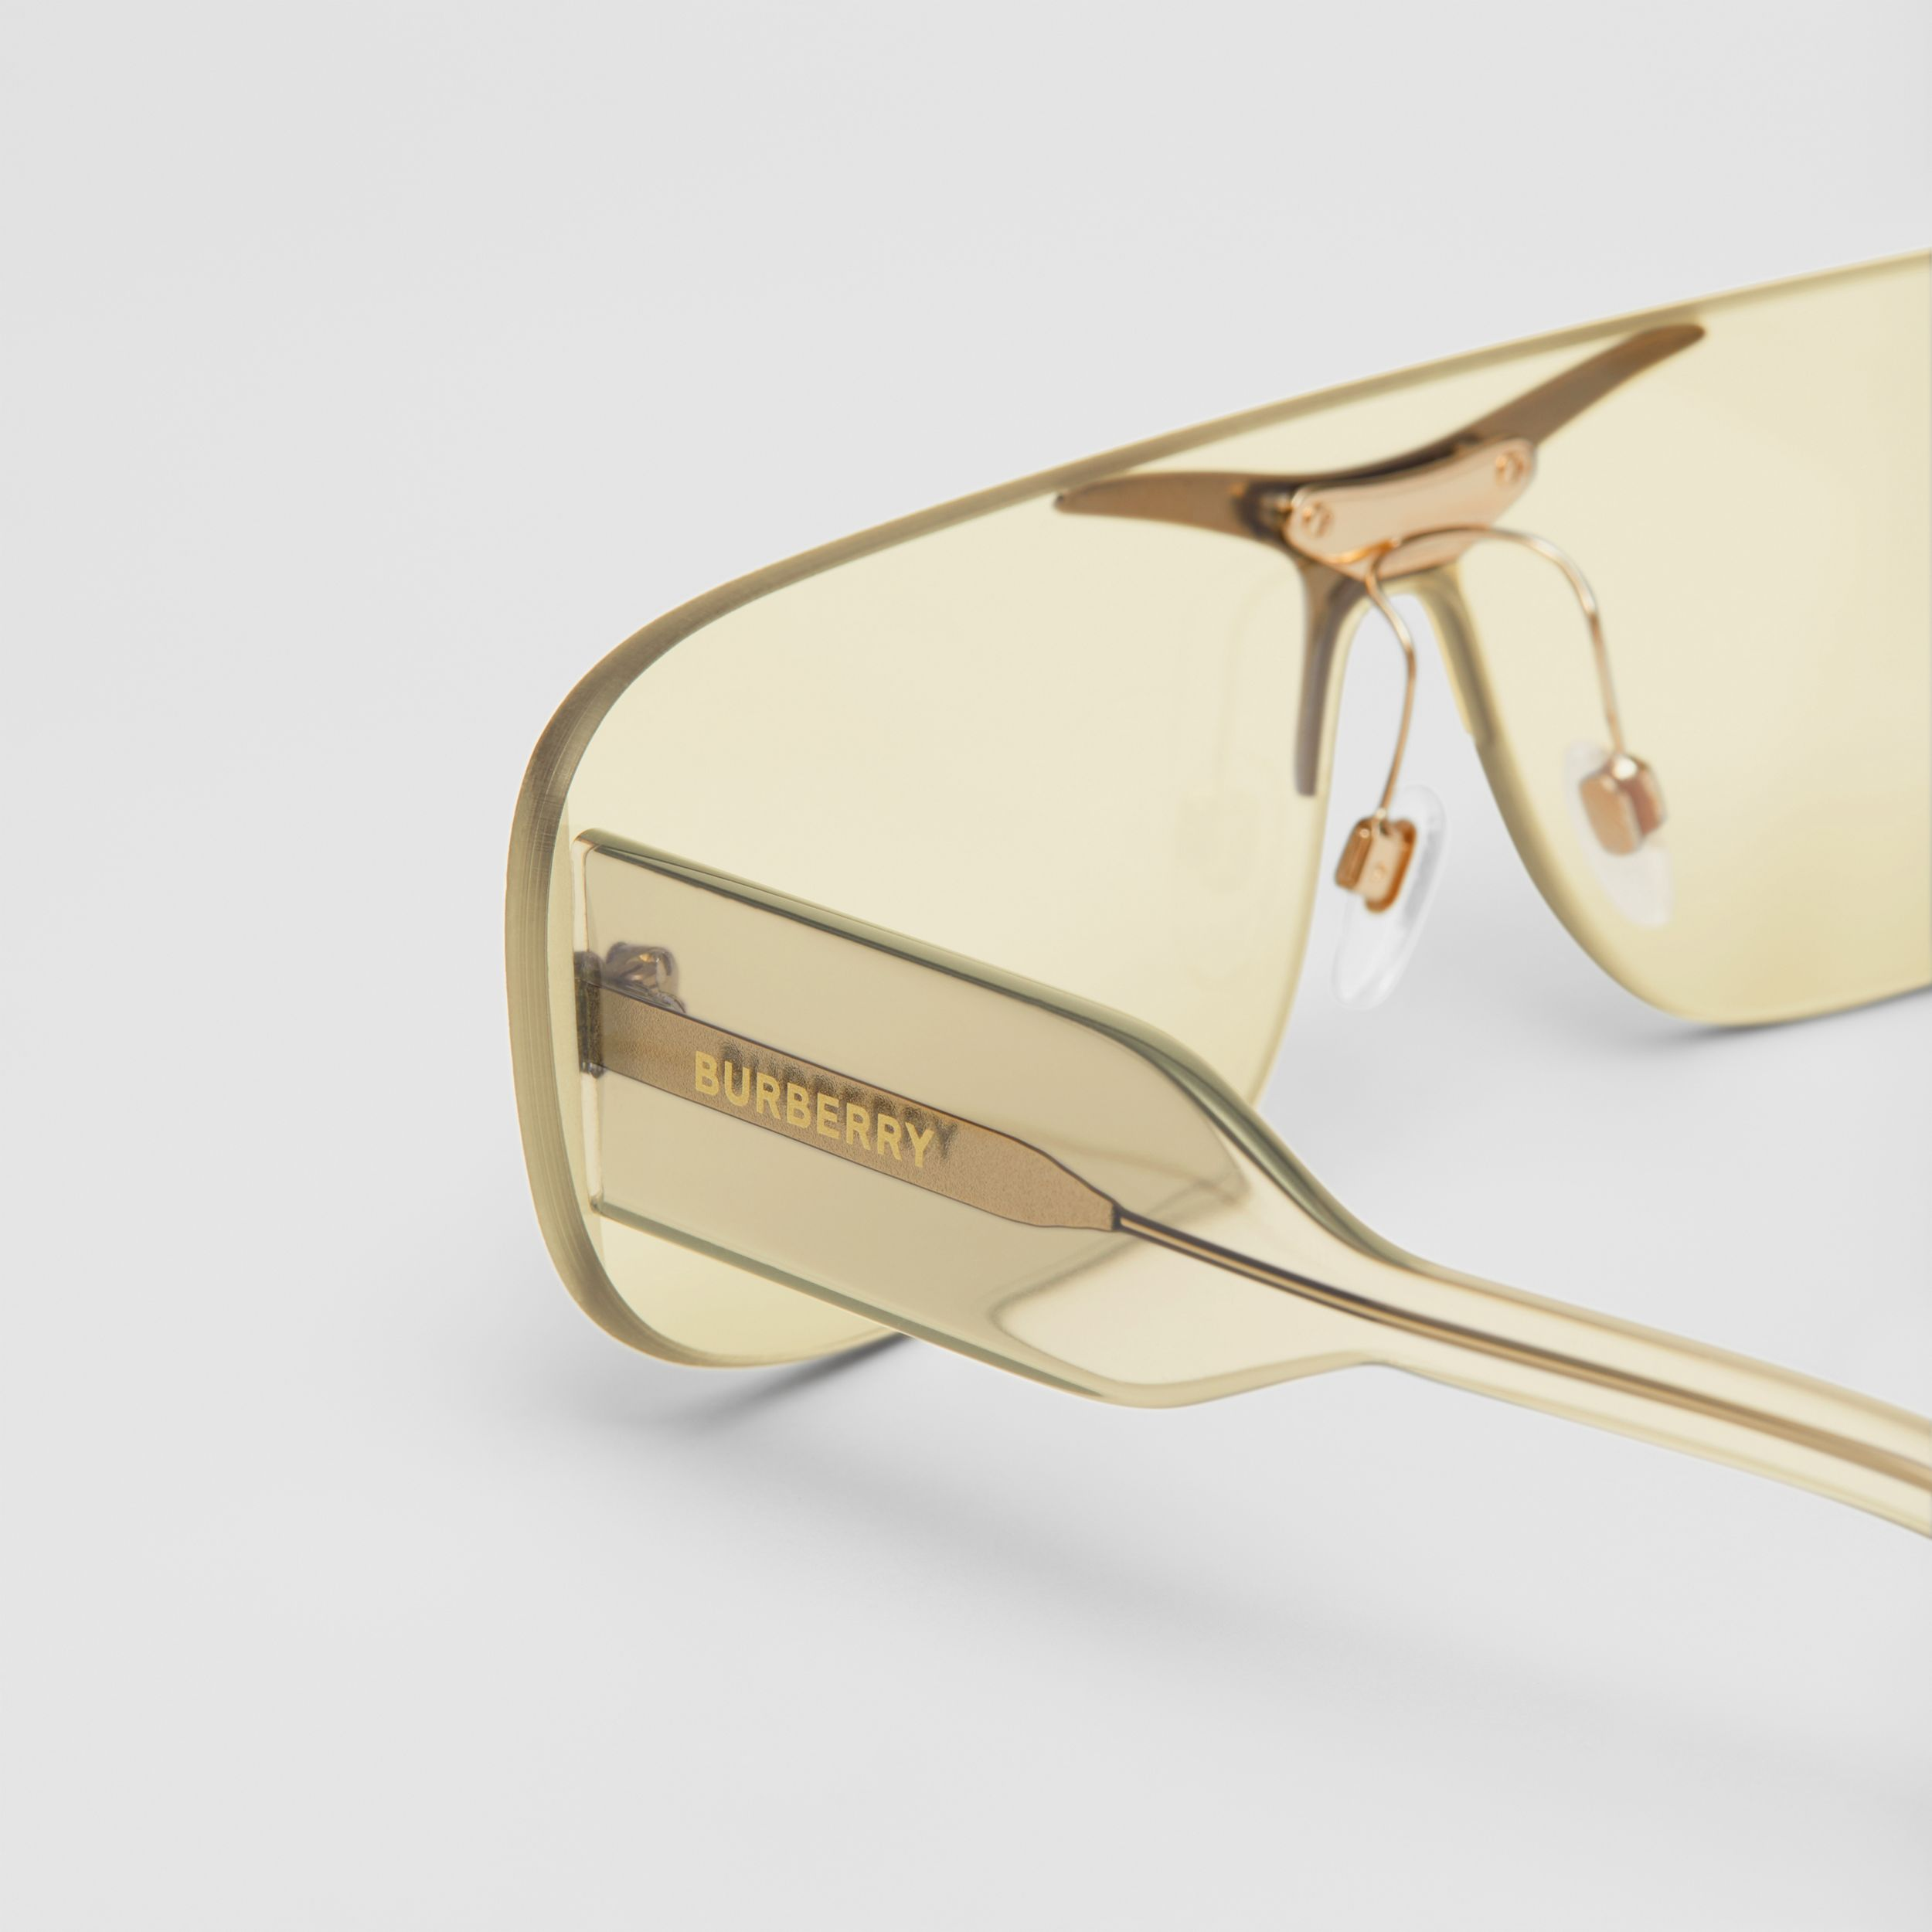 Blake Shield Sunglasses in Nude Gold | Burberry - 2